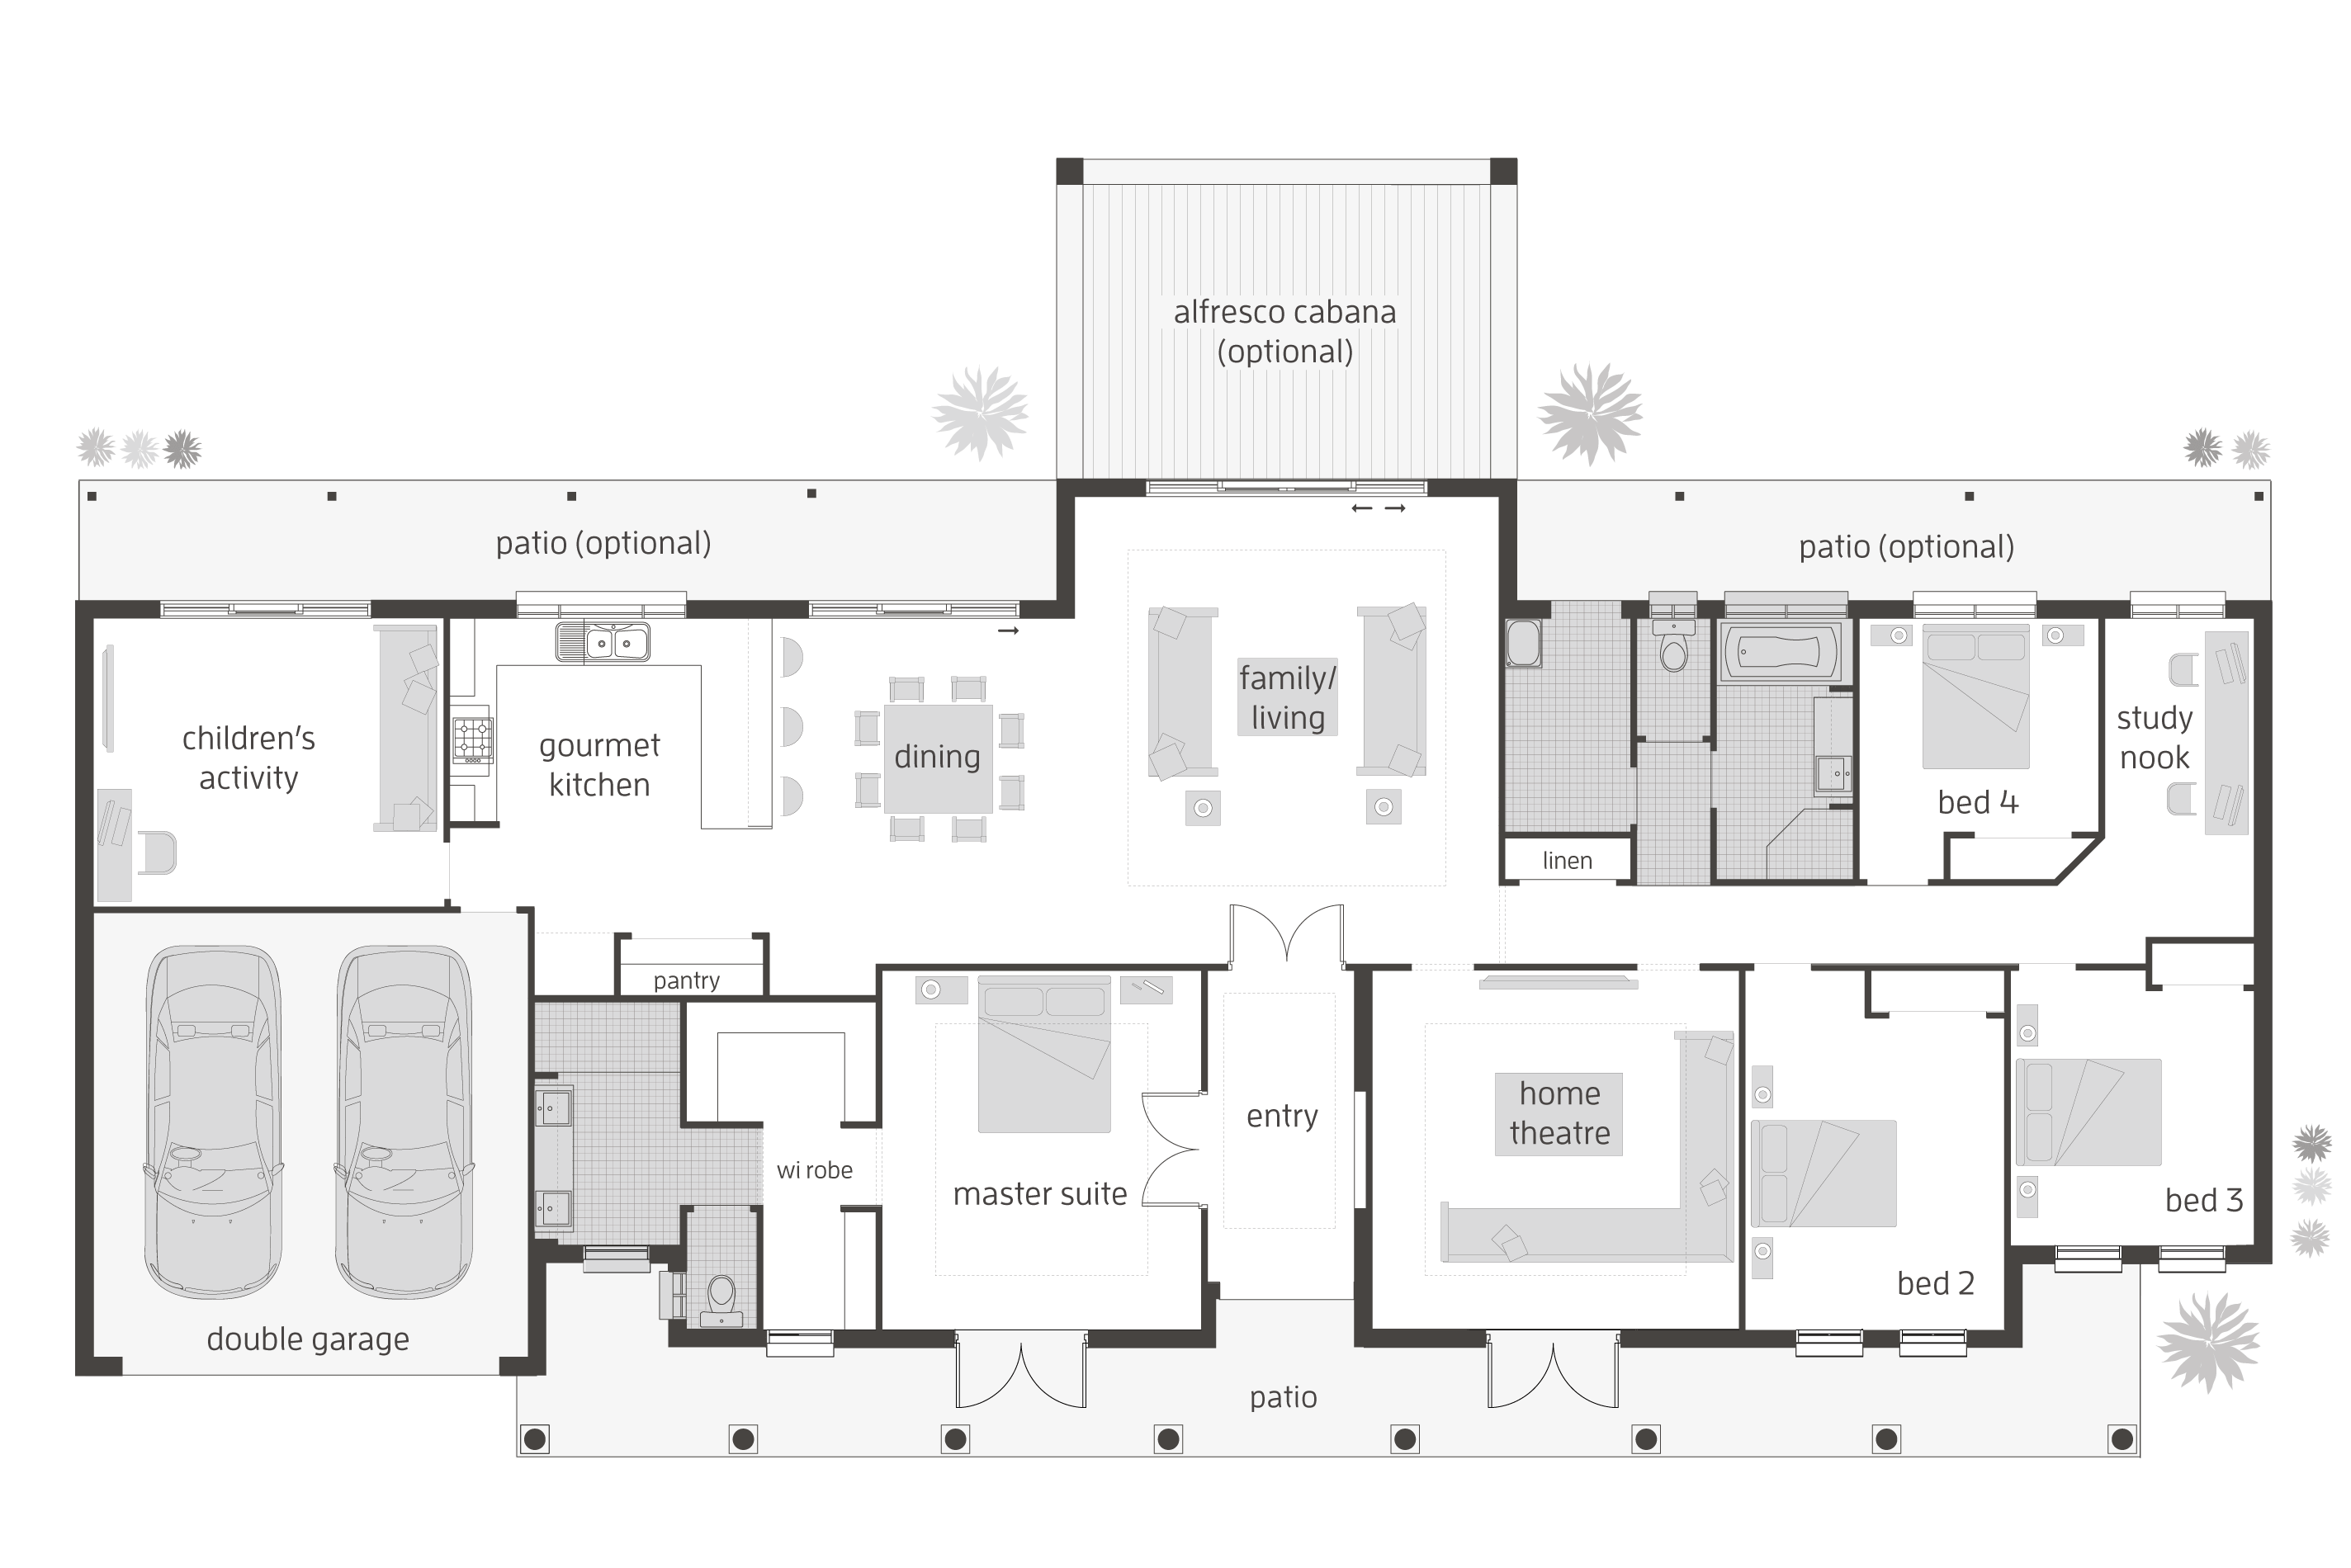 acreage house_plans mcdonald jones somersetgrange activity lhs 2546x19001